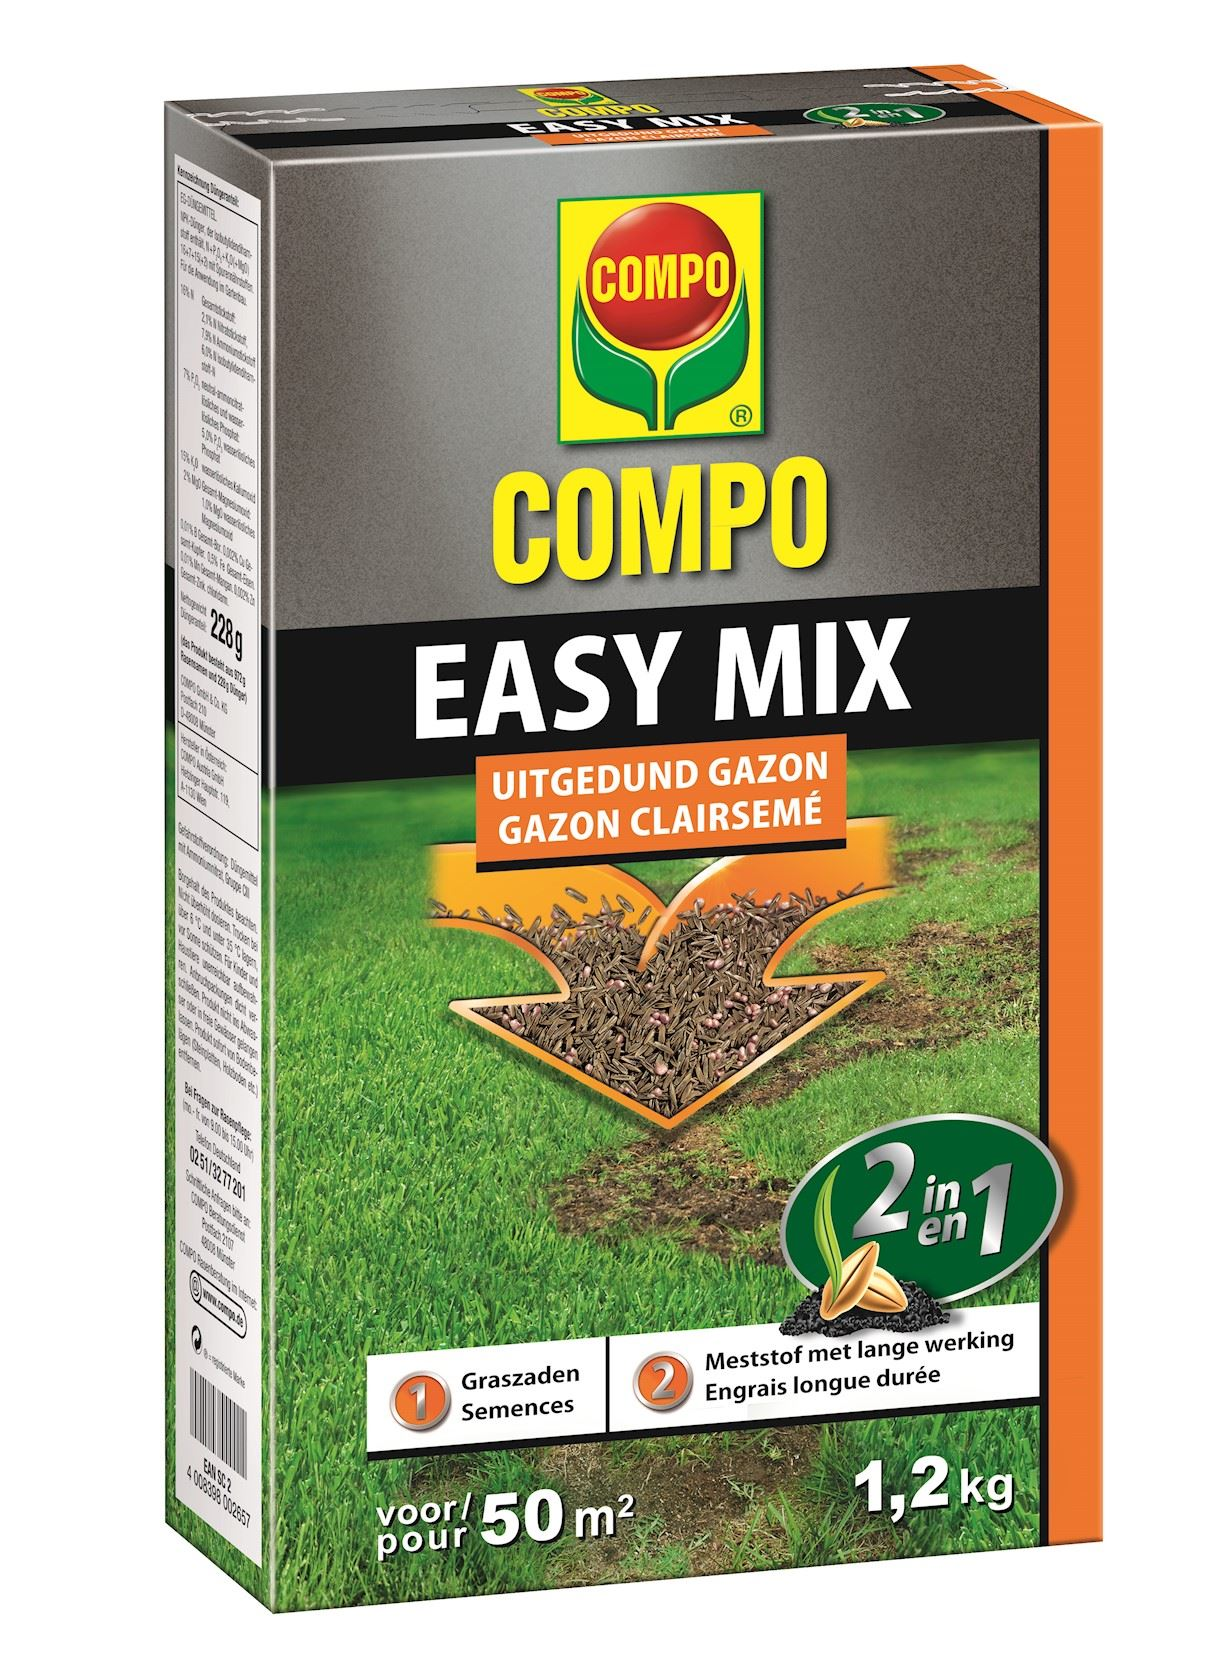 Compo easy mix 2 in 1- 1,2kg